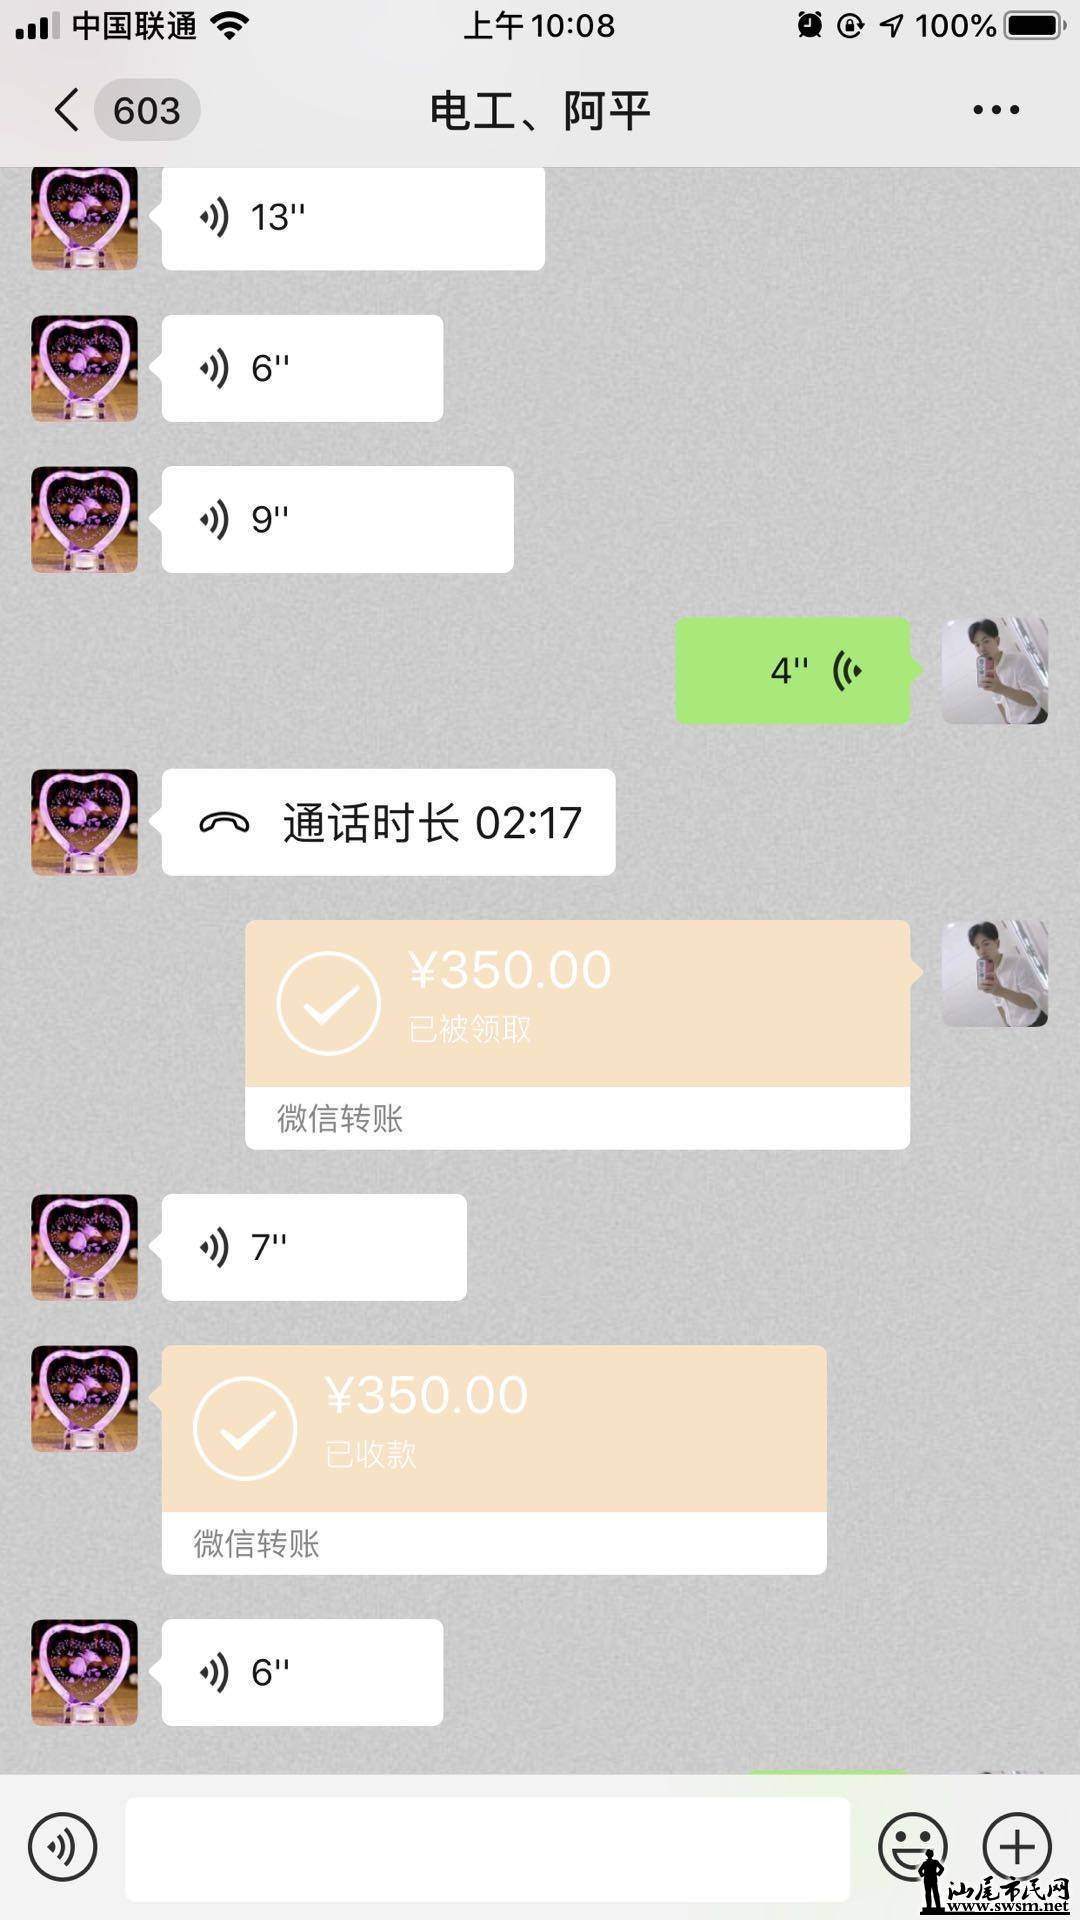 wechat_upload15736620585dcc2d6ad8413